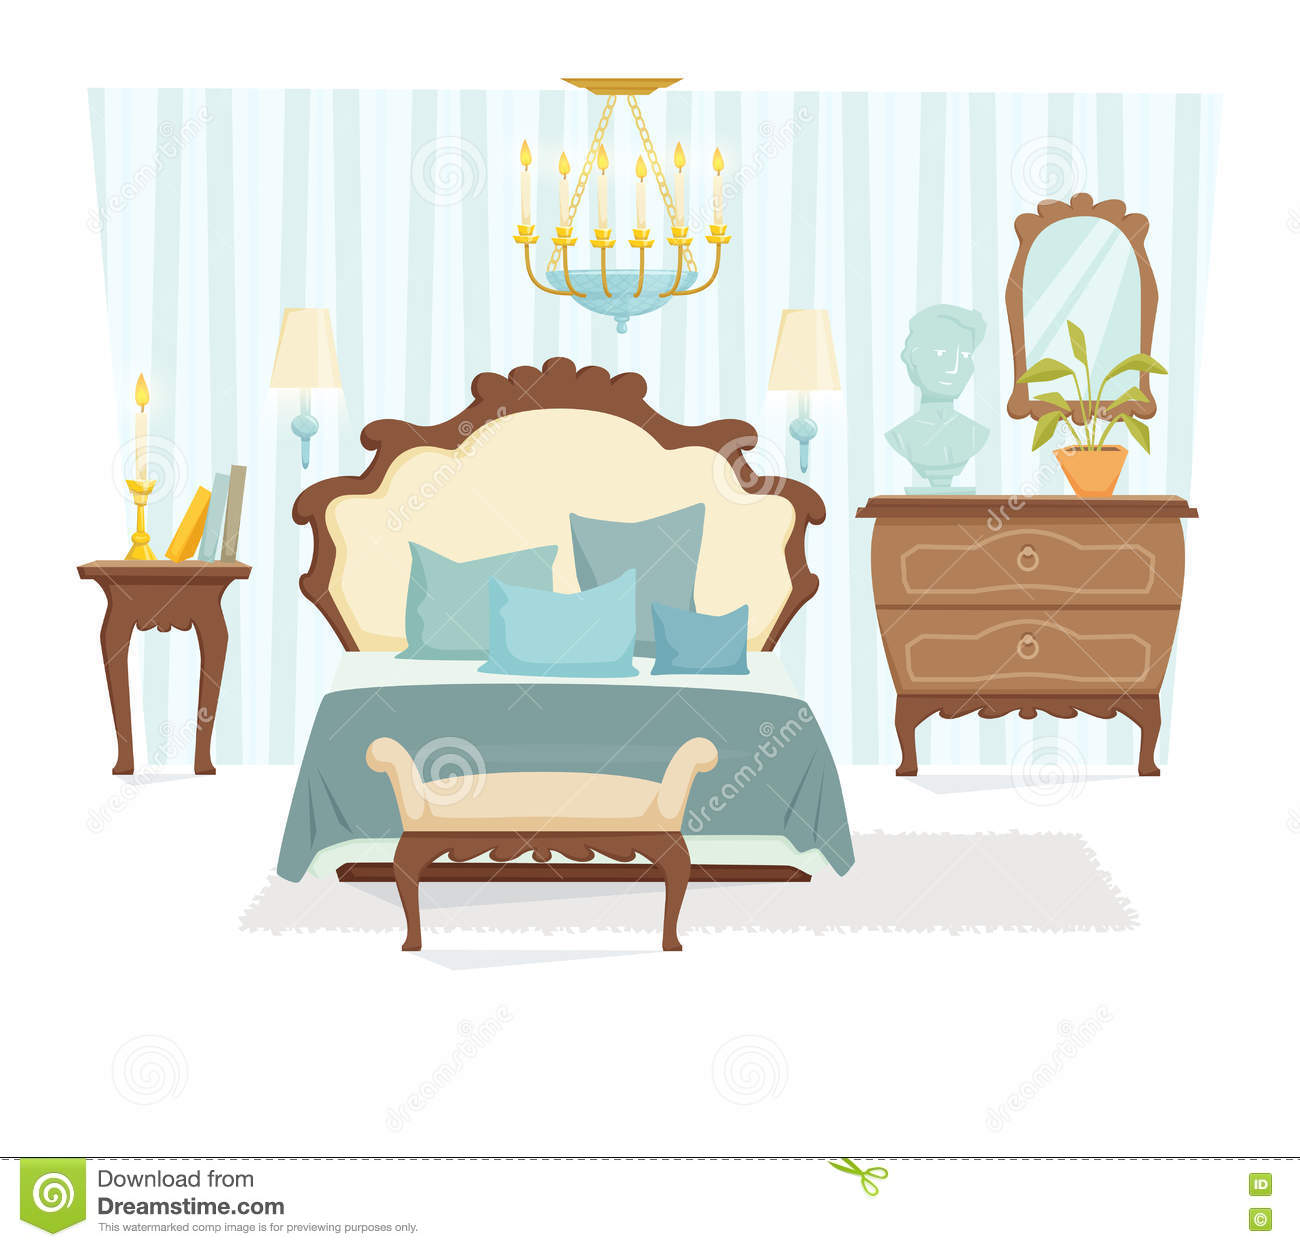 Bedroom classic interior stock vector illustration of for Classic interior furniture